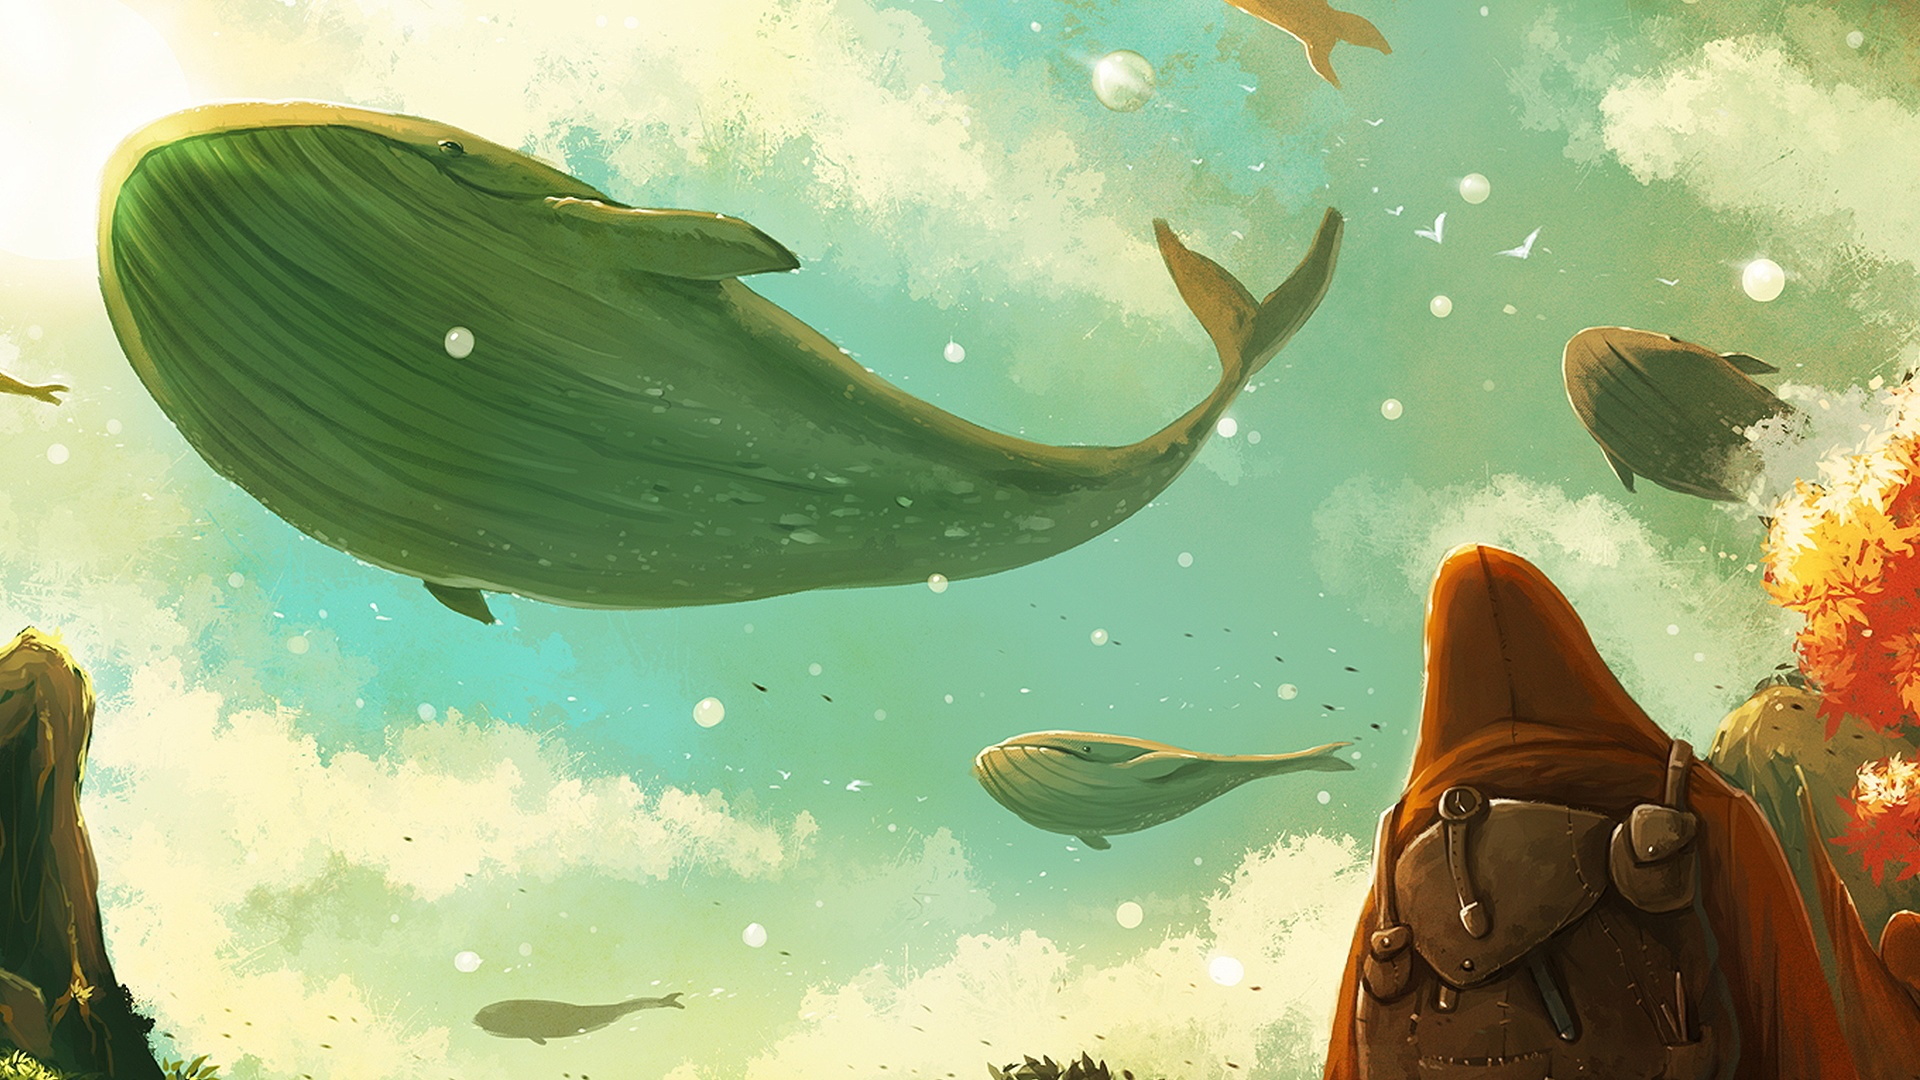 free download new animated desktop wallpapers animated whales images 811